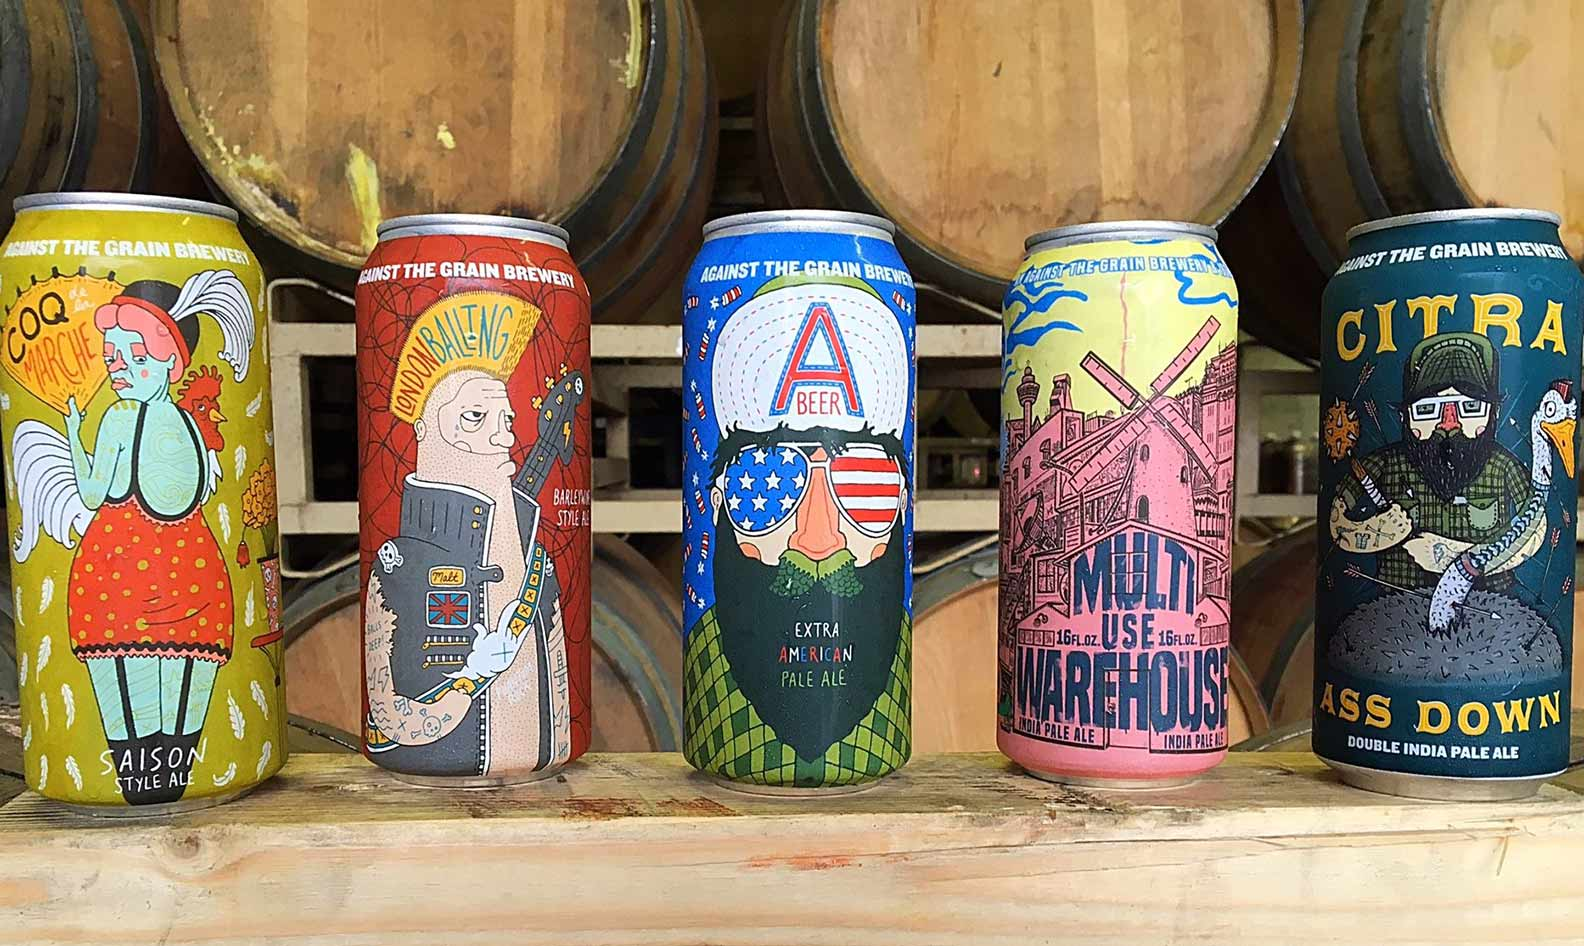 Against The Grain beers